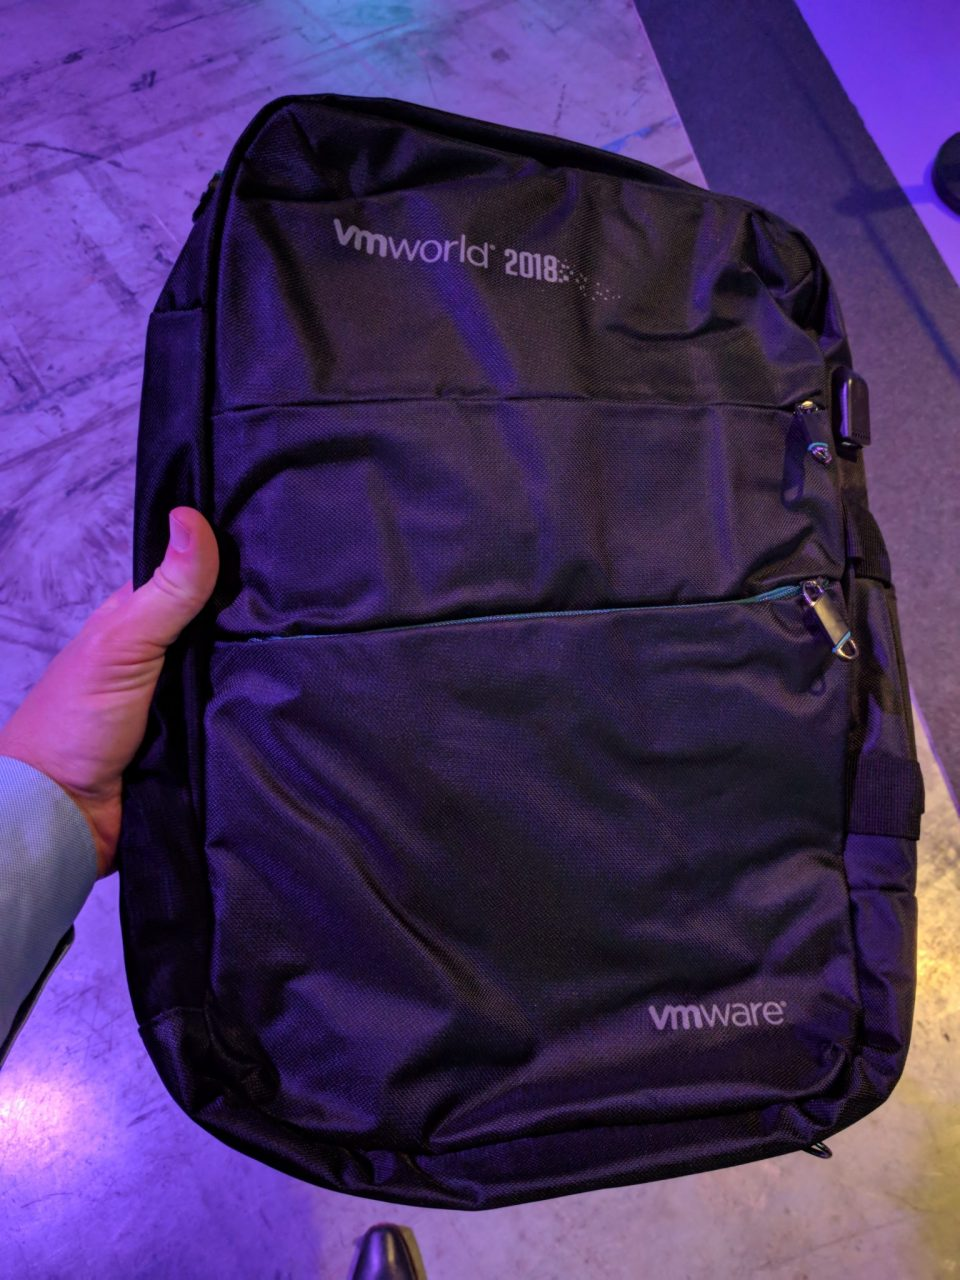 VMworld 2018 EU - Backpack